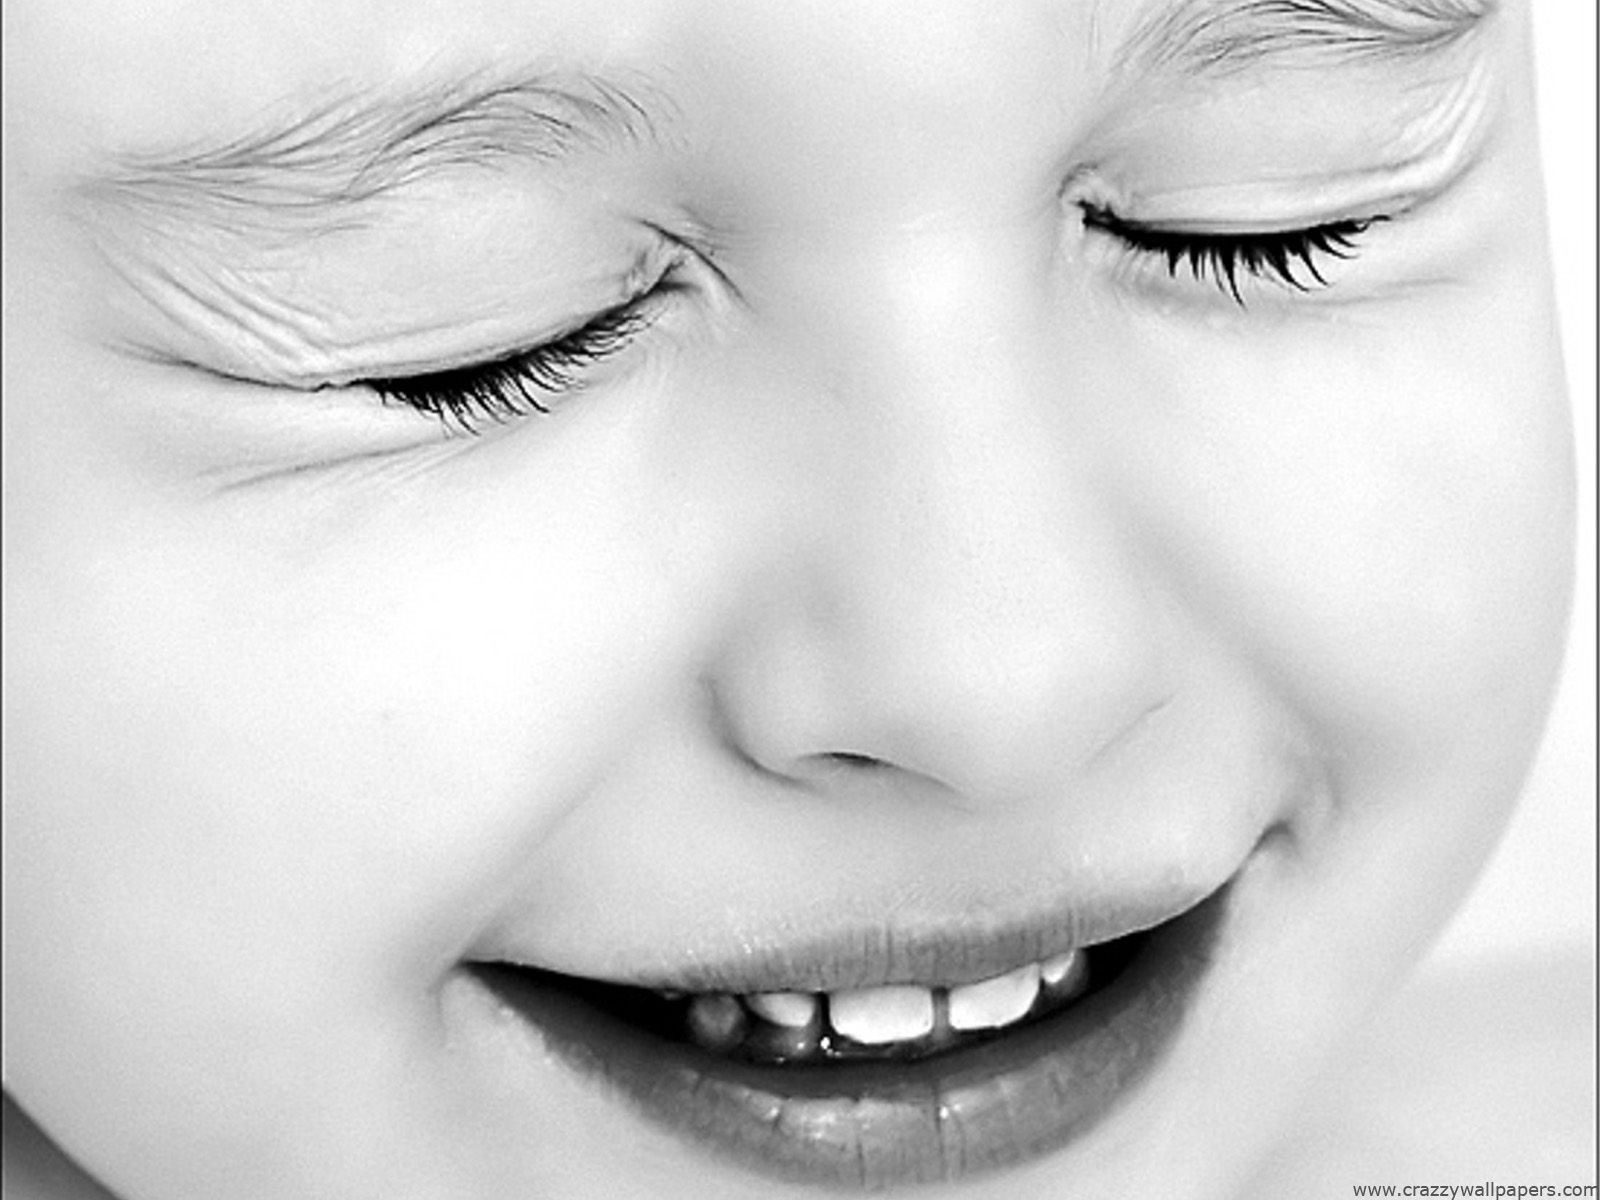 Black and white photos cute baby black and white wallpapers best wallpapers hd